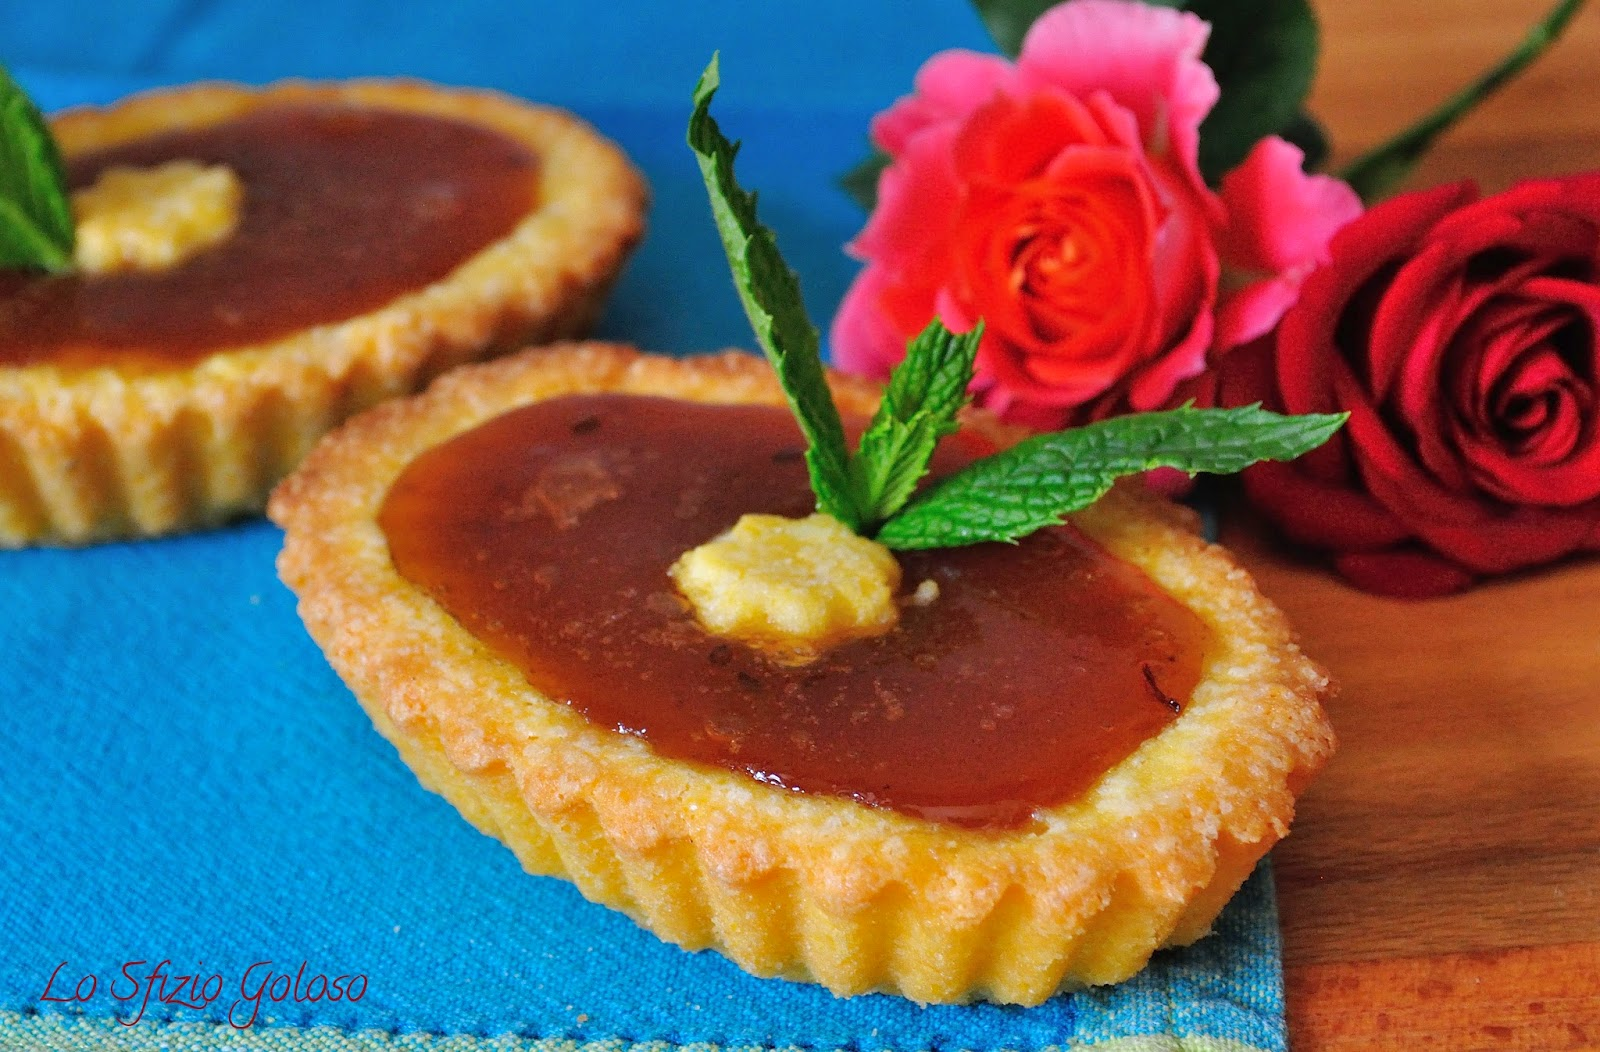 crostatine senza glutine all'uva spina